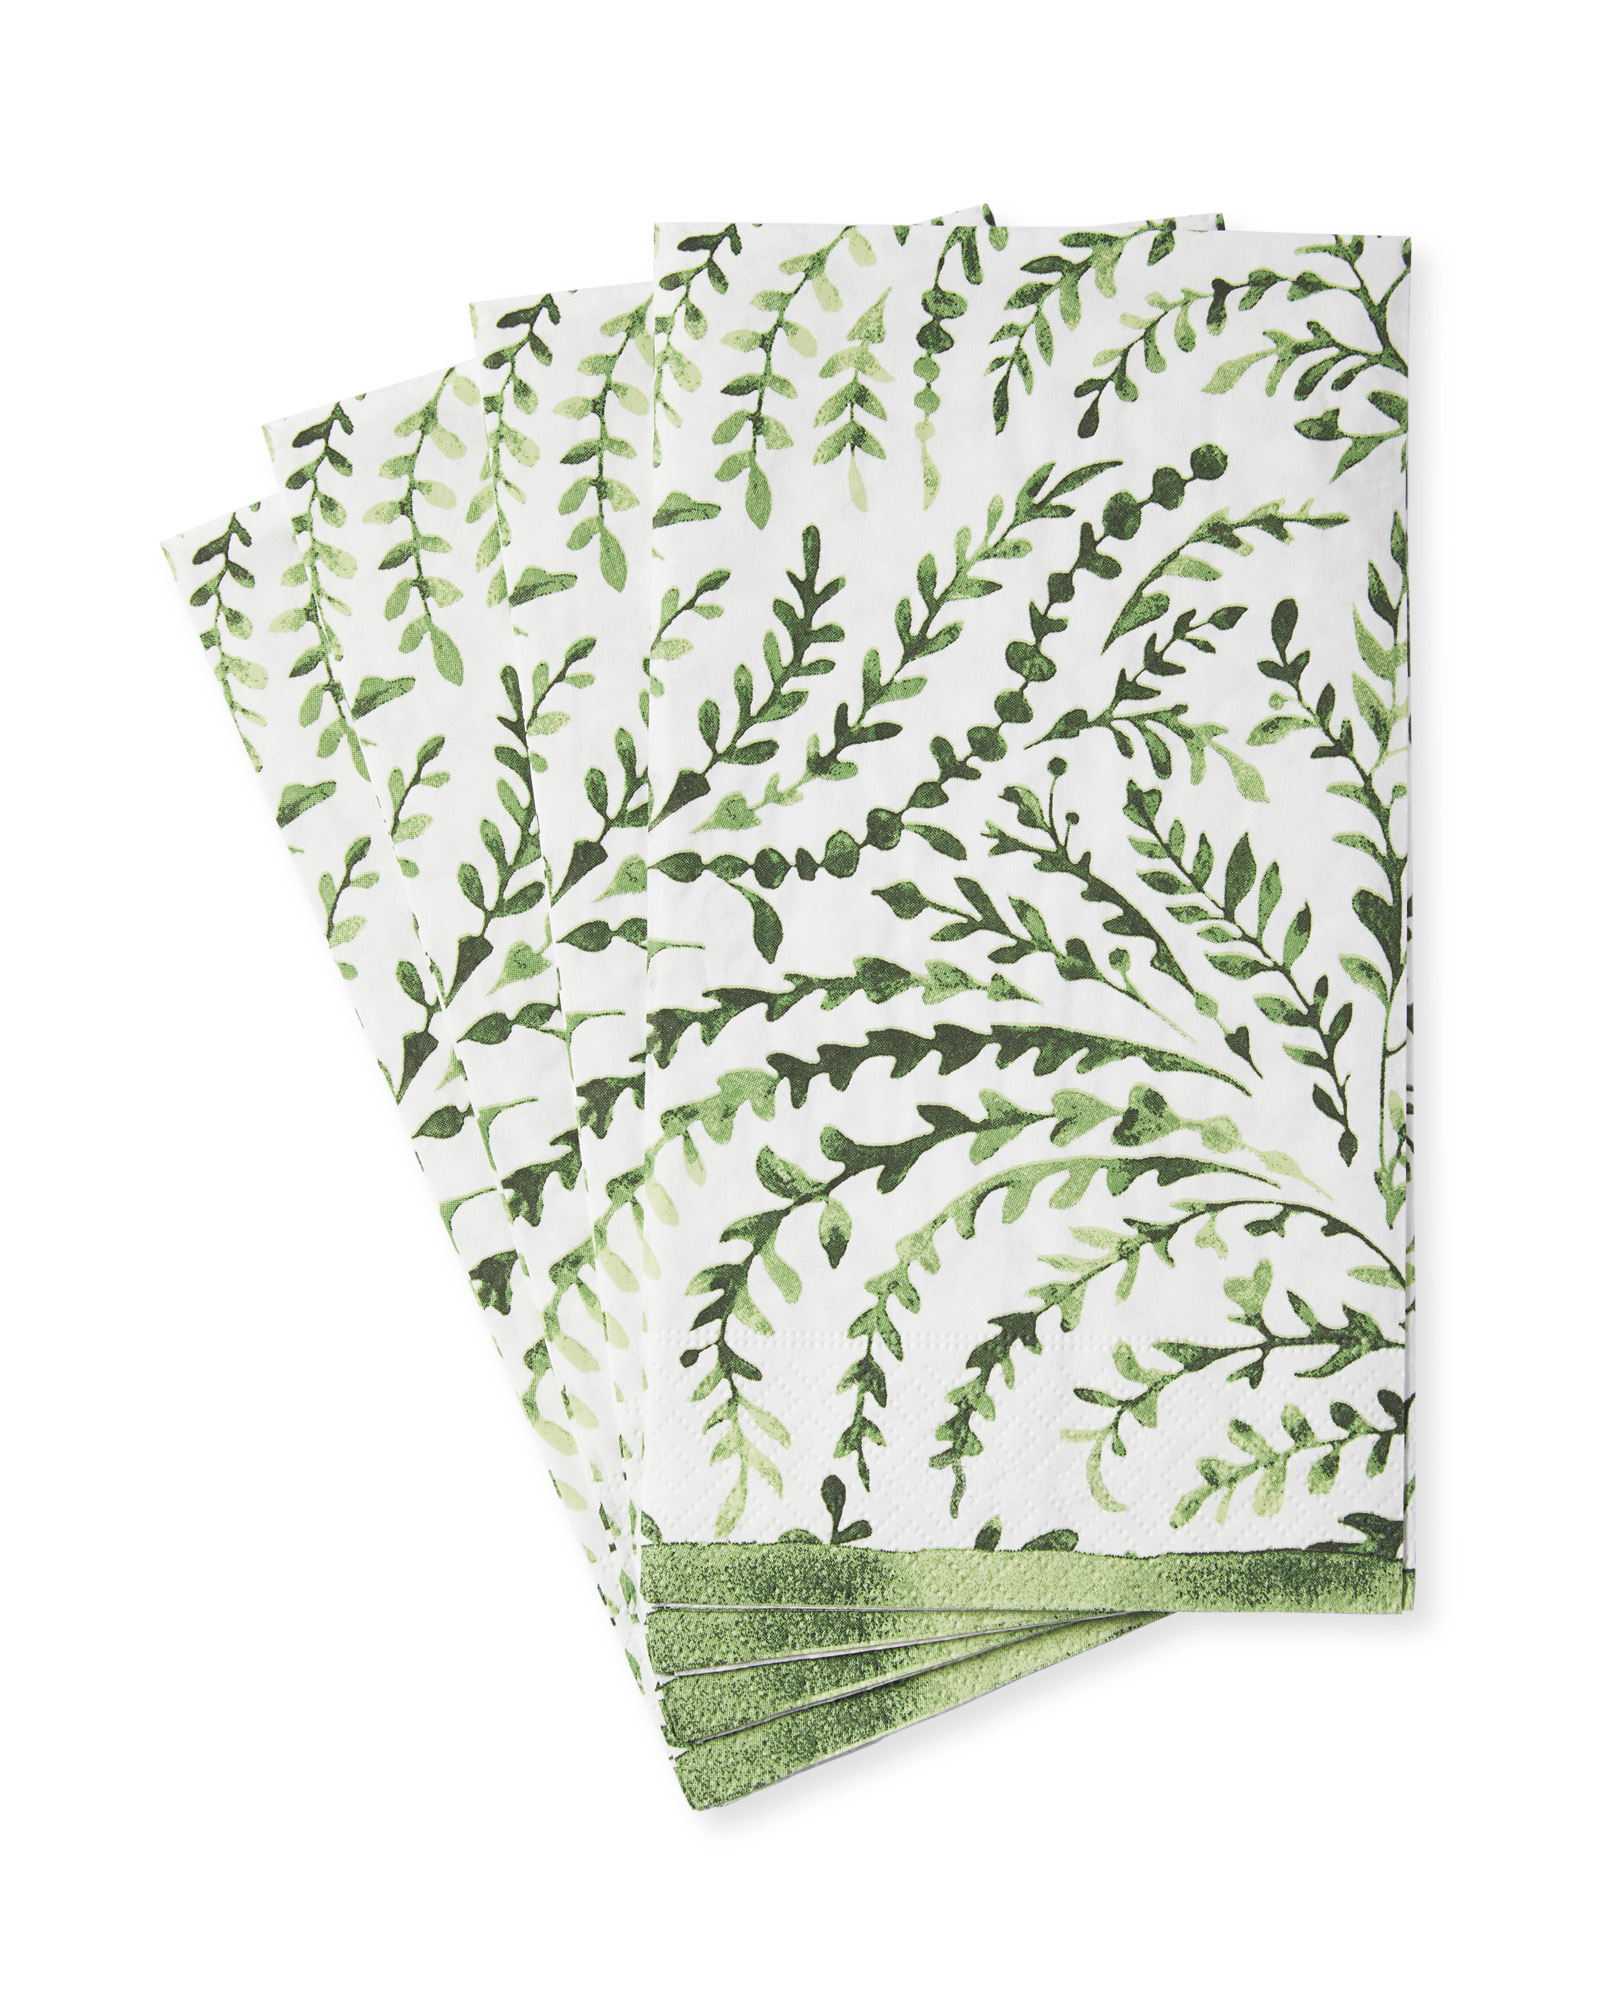 Priano Napkins - Guest (Set of 15), Green